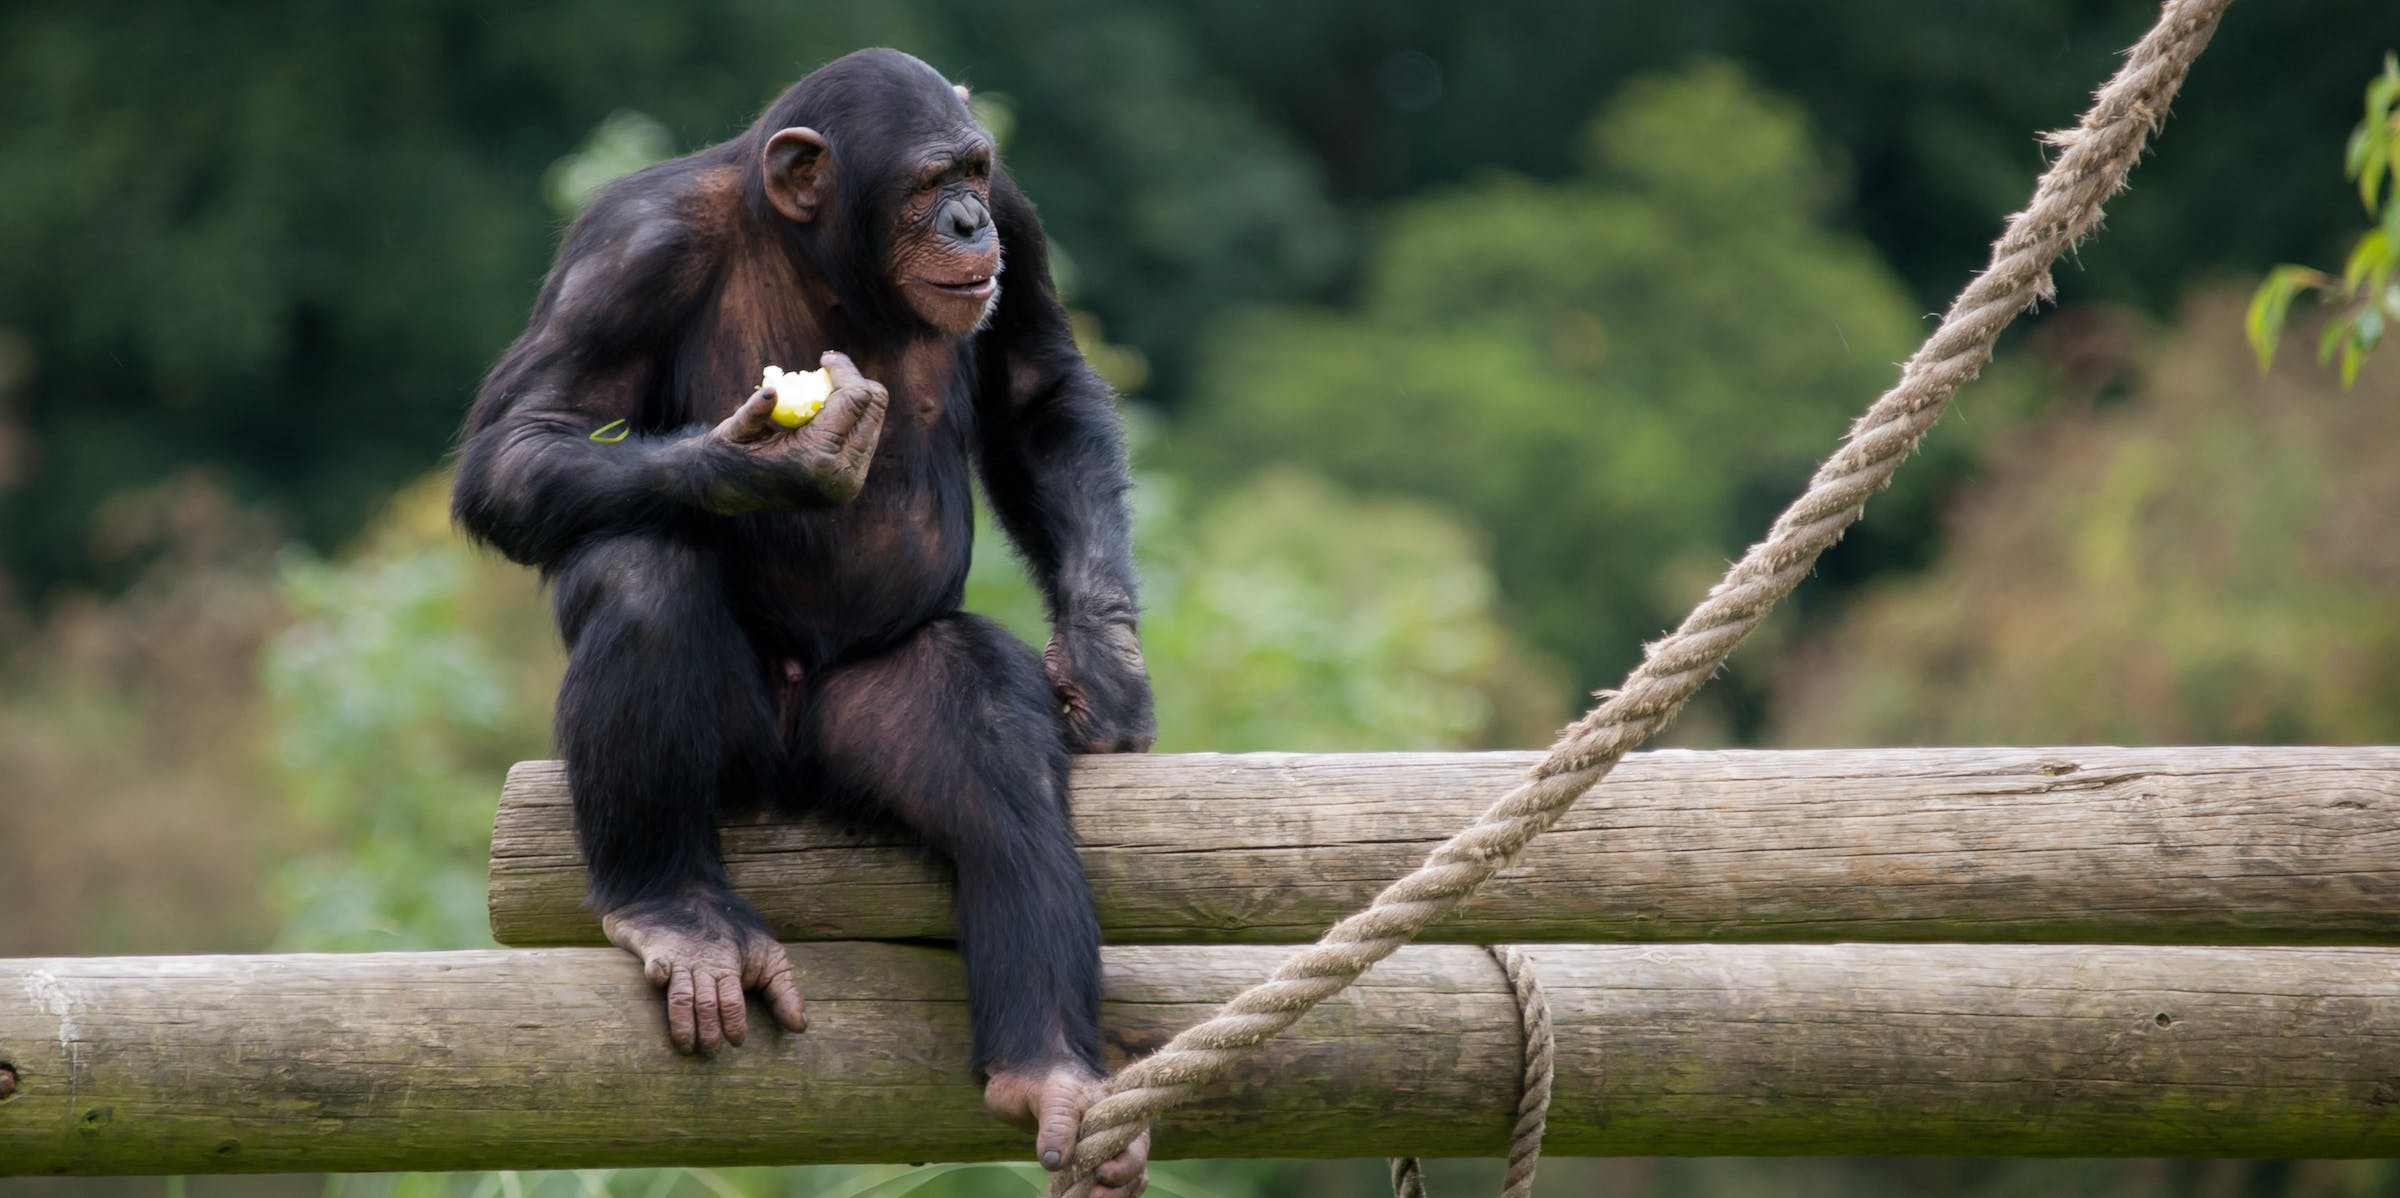 chimpanzee self-control restraint willpower